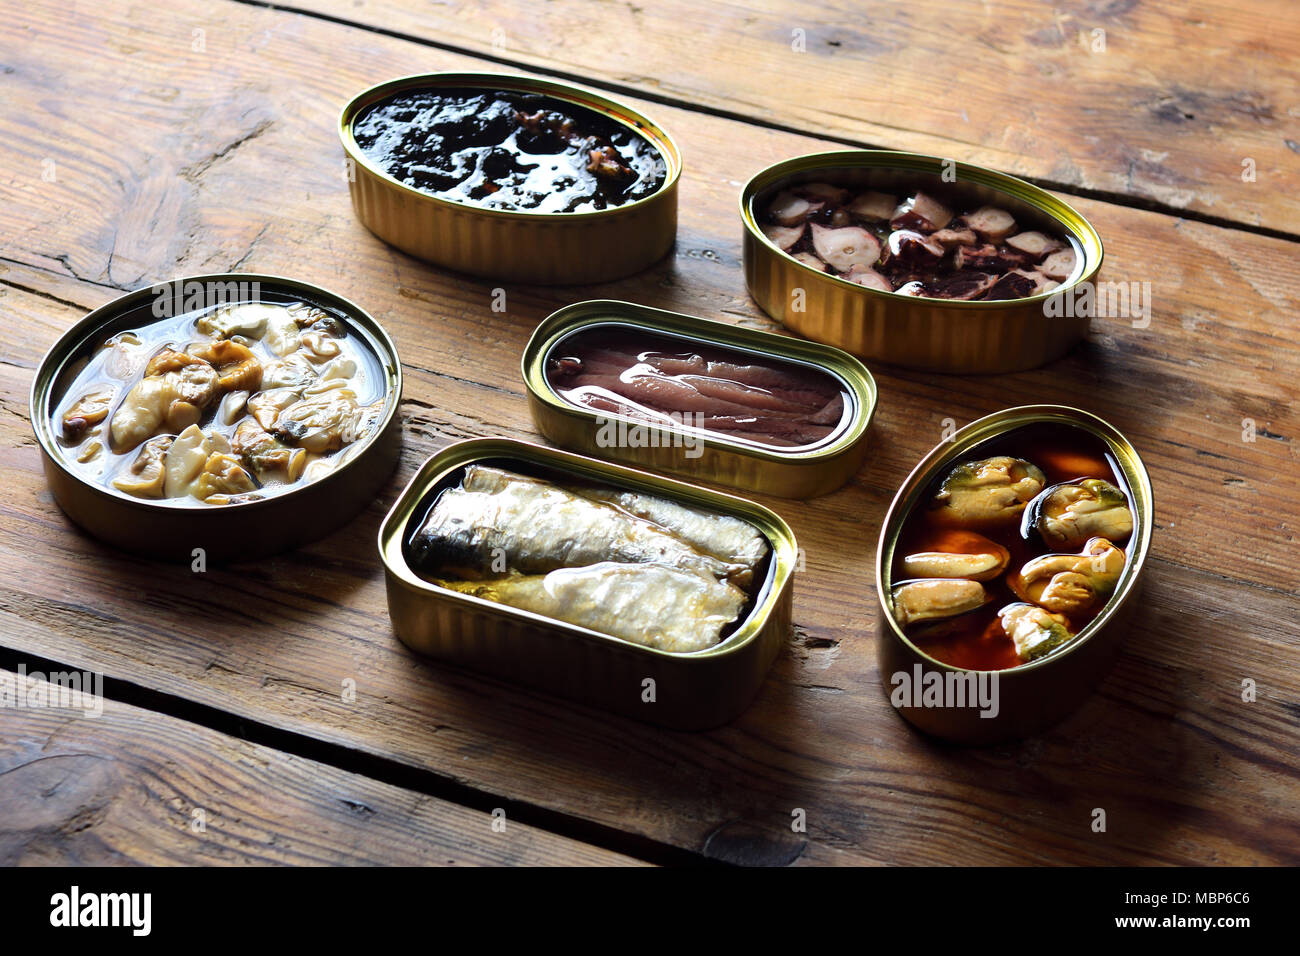 tin cans on a table - Stock Image